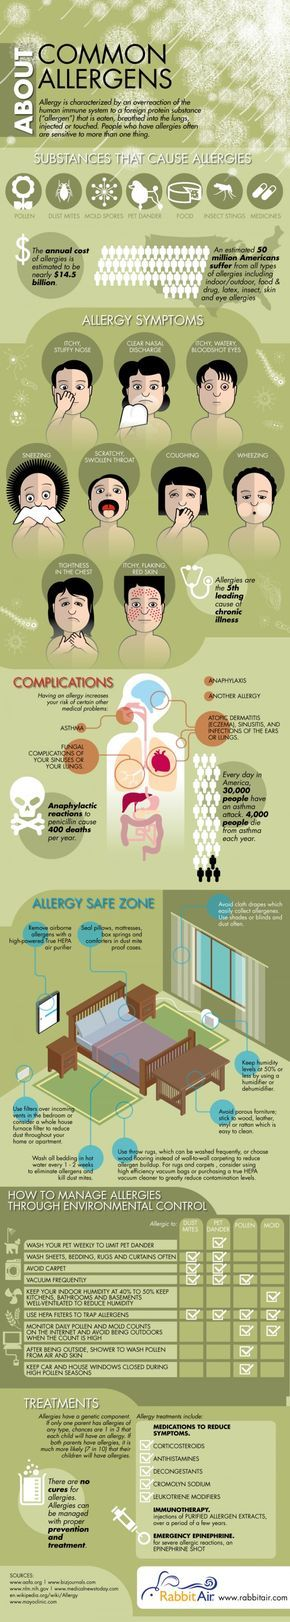 Allergens are the substances that can cause an allergy. If you are suffering from an allergy the symptoms can range from eye irritation to difficulty in breathing. If you want to know more about Allergens, this interesting infographic poster can help you. It shows the substances that cause allergies as well as the symptoms of allergy. It also talks about the treatment of allergies and the ways to keep you safe from allergens.